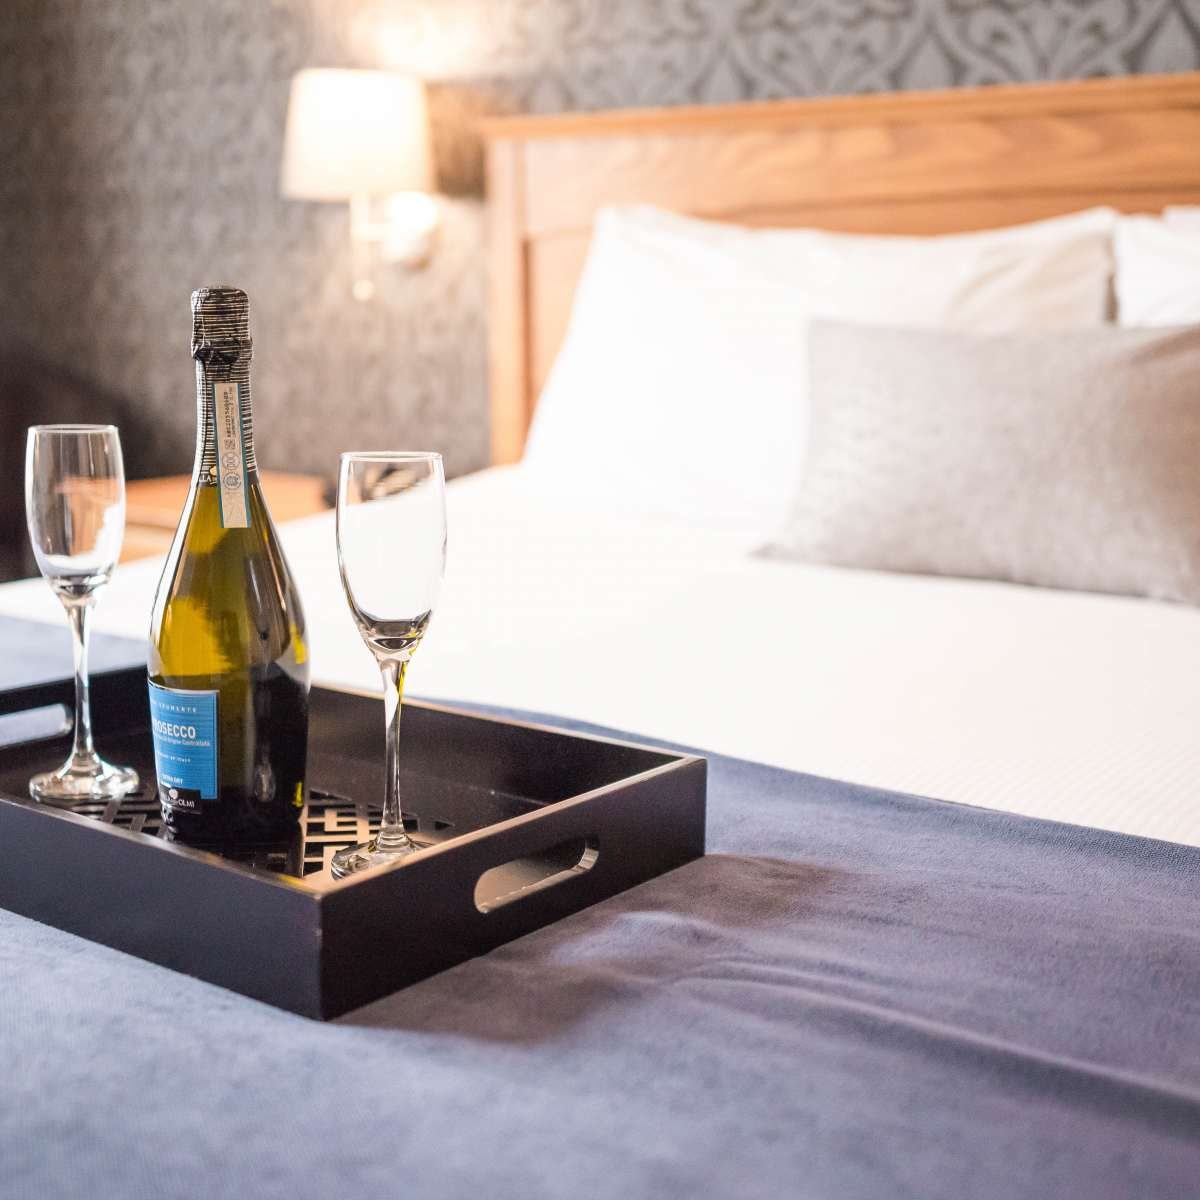 King sized bed with serving tray containing two glasses and a bottle of champagne